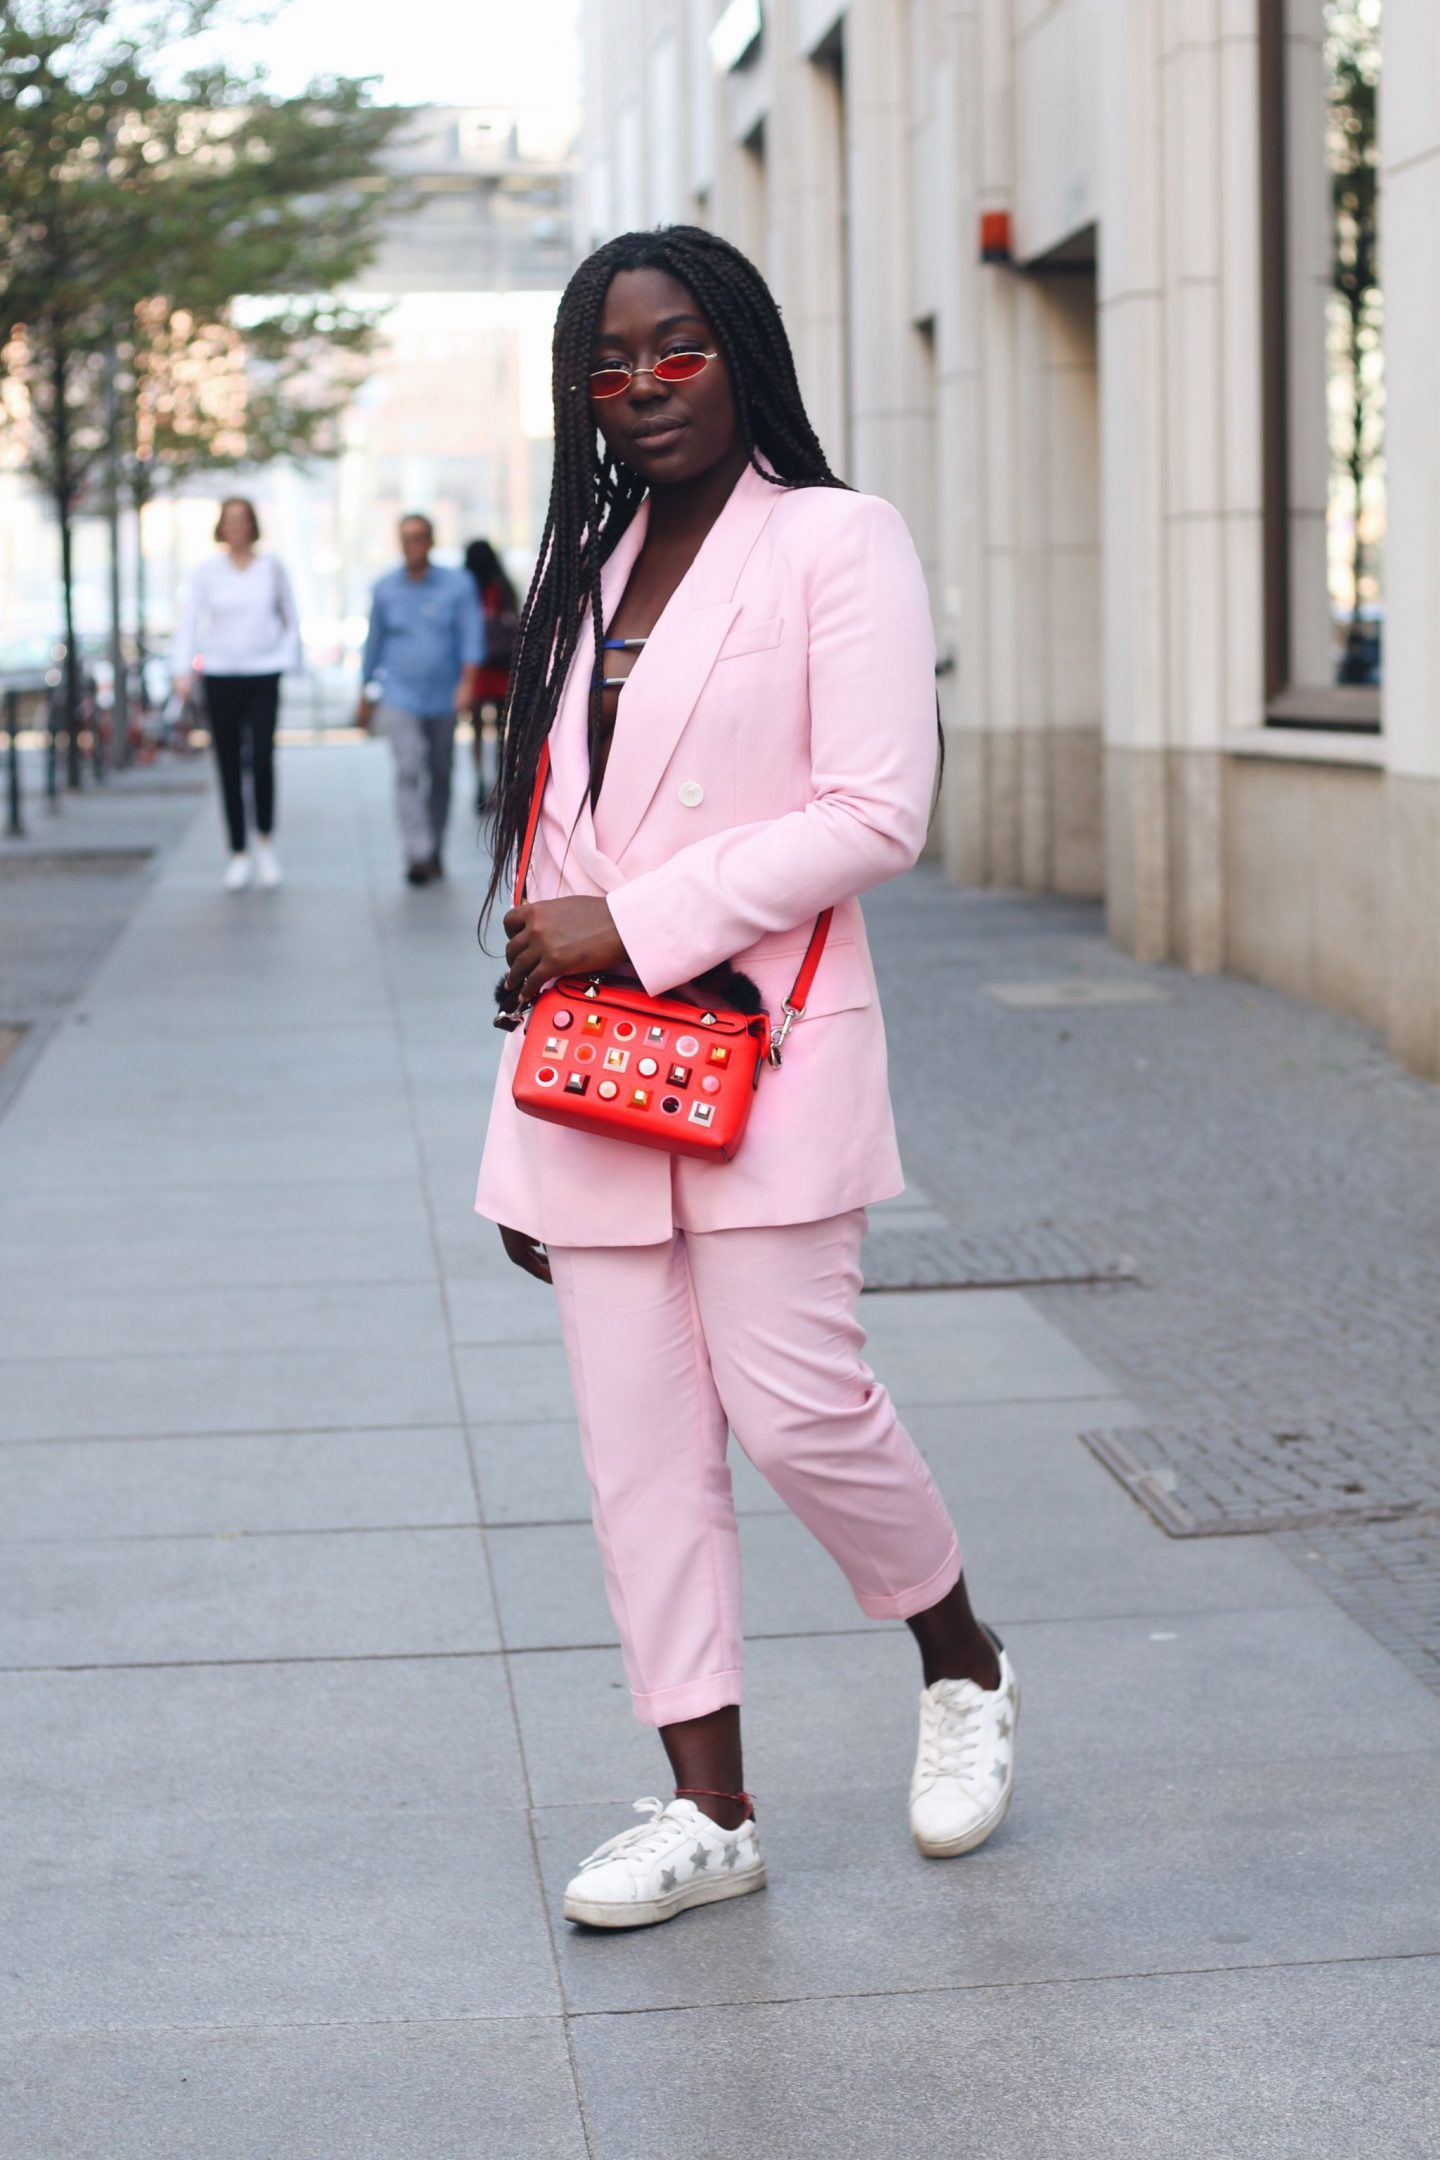 Lois_Opoku_pink_suit_fendi_by_the_way_bag_fasion_week_street_style_lisforlois_5